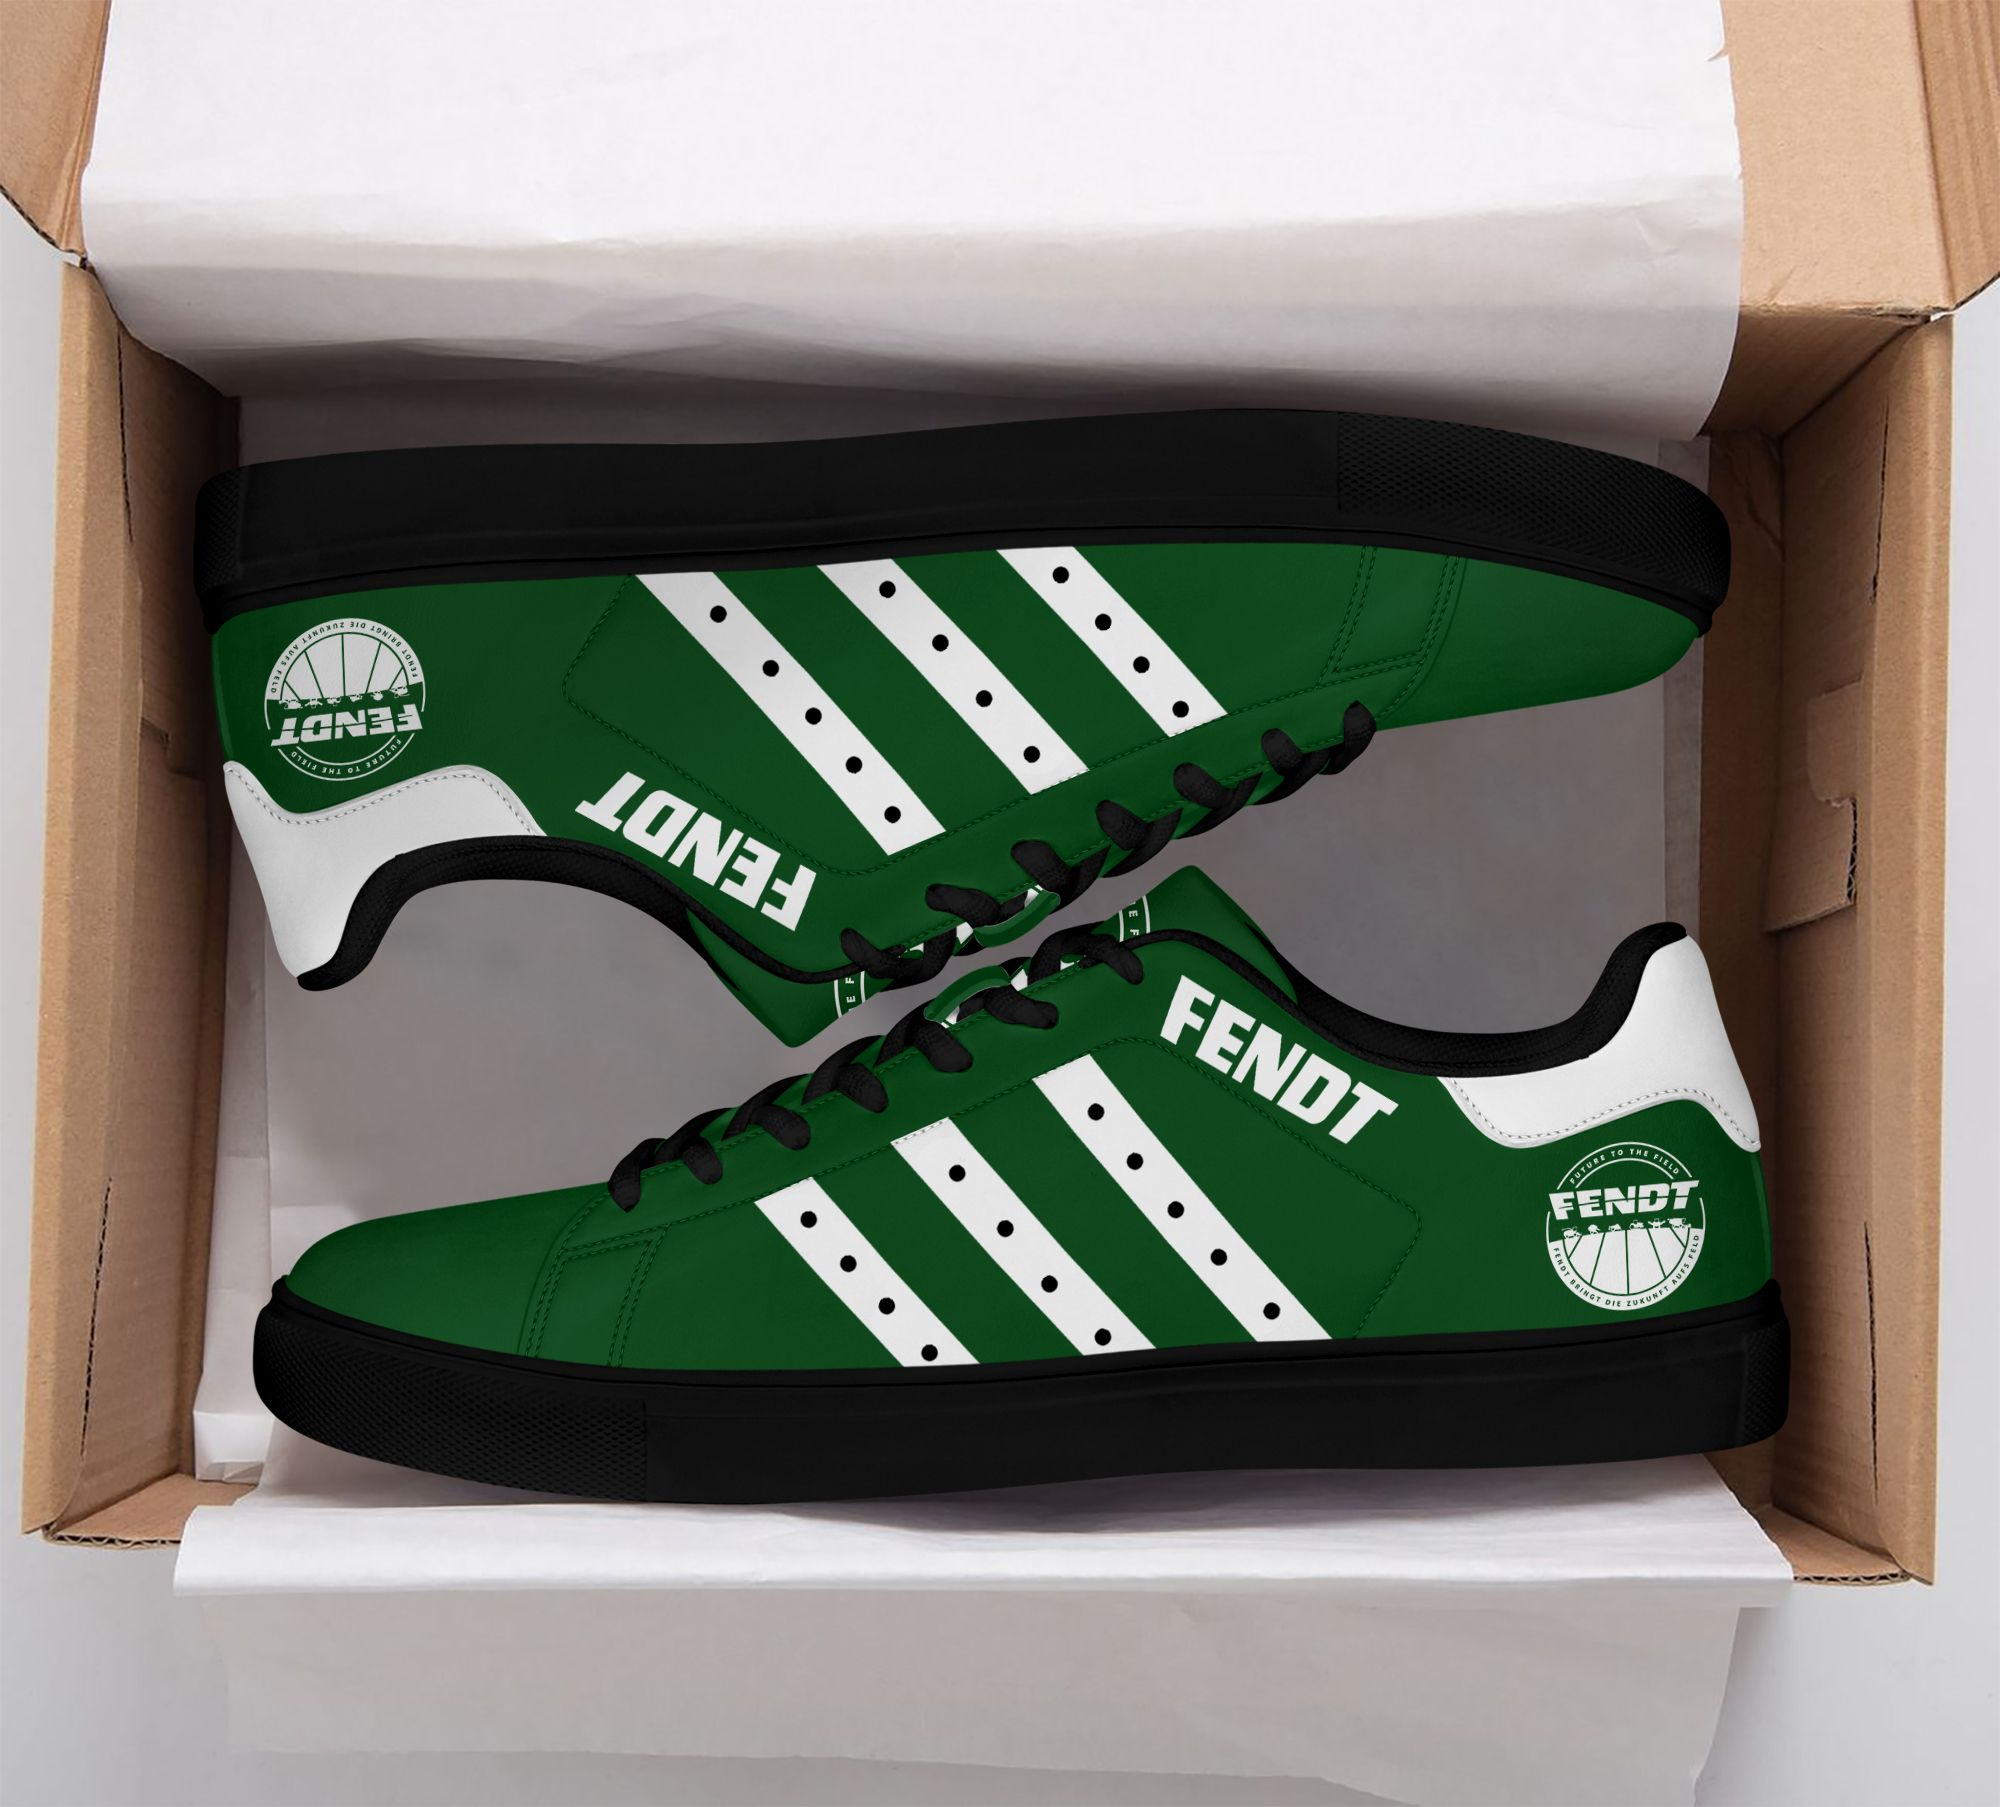 Fendt green and white Stan Smith Shoes Sneaker